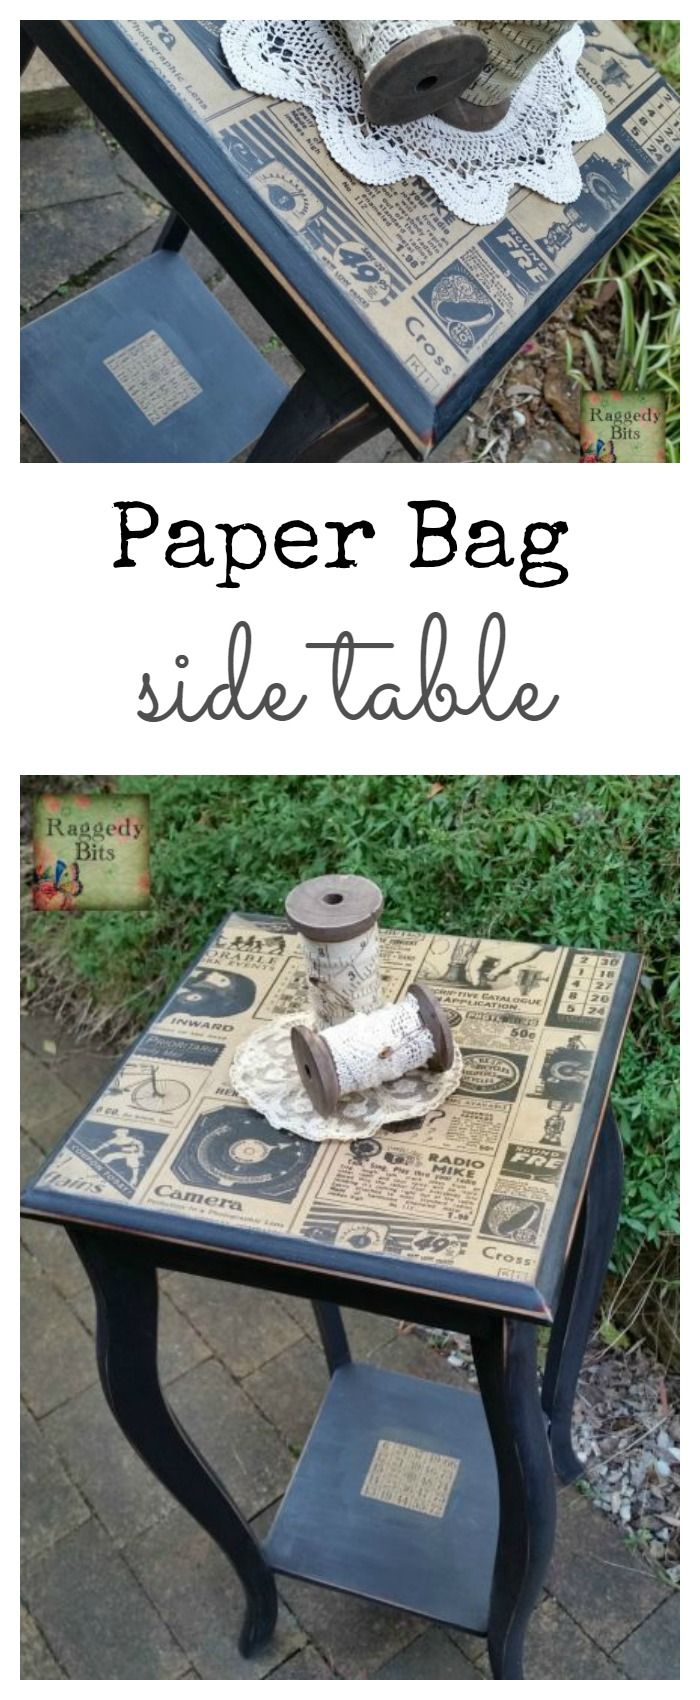 Repurposing an old paper bag from Typo see how I gave a side table a new Vintage Farmhouse Paper Bag Side Table look | www.raggedy-bits.com